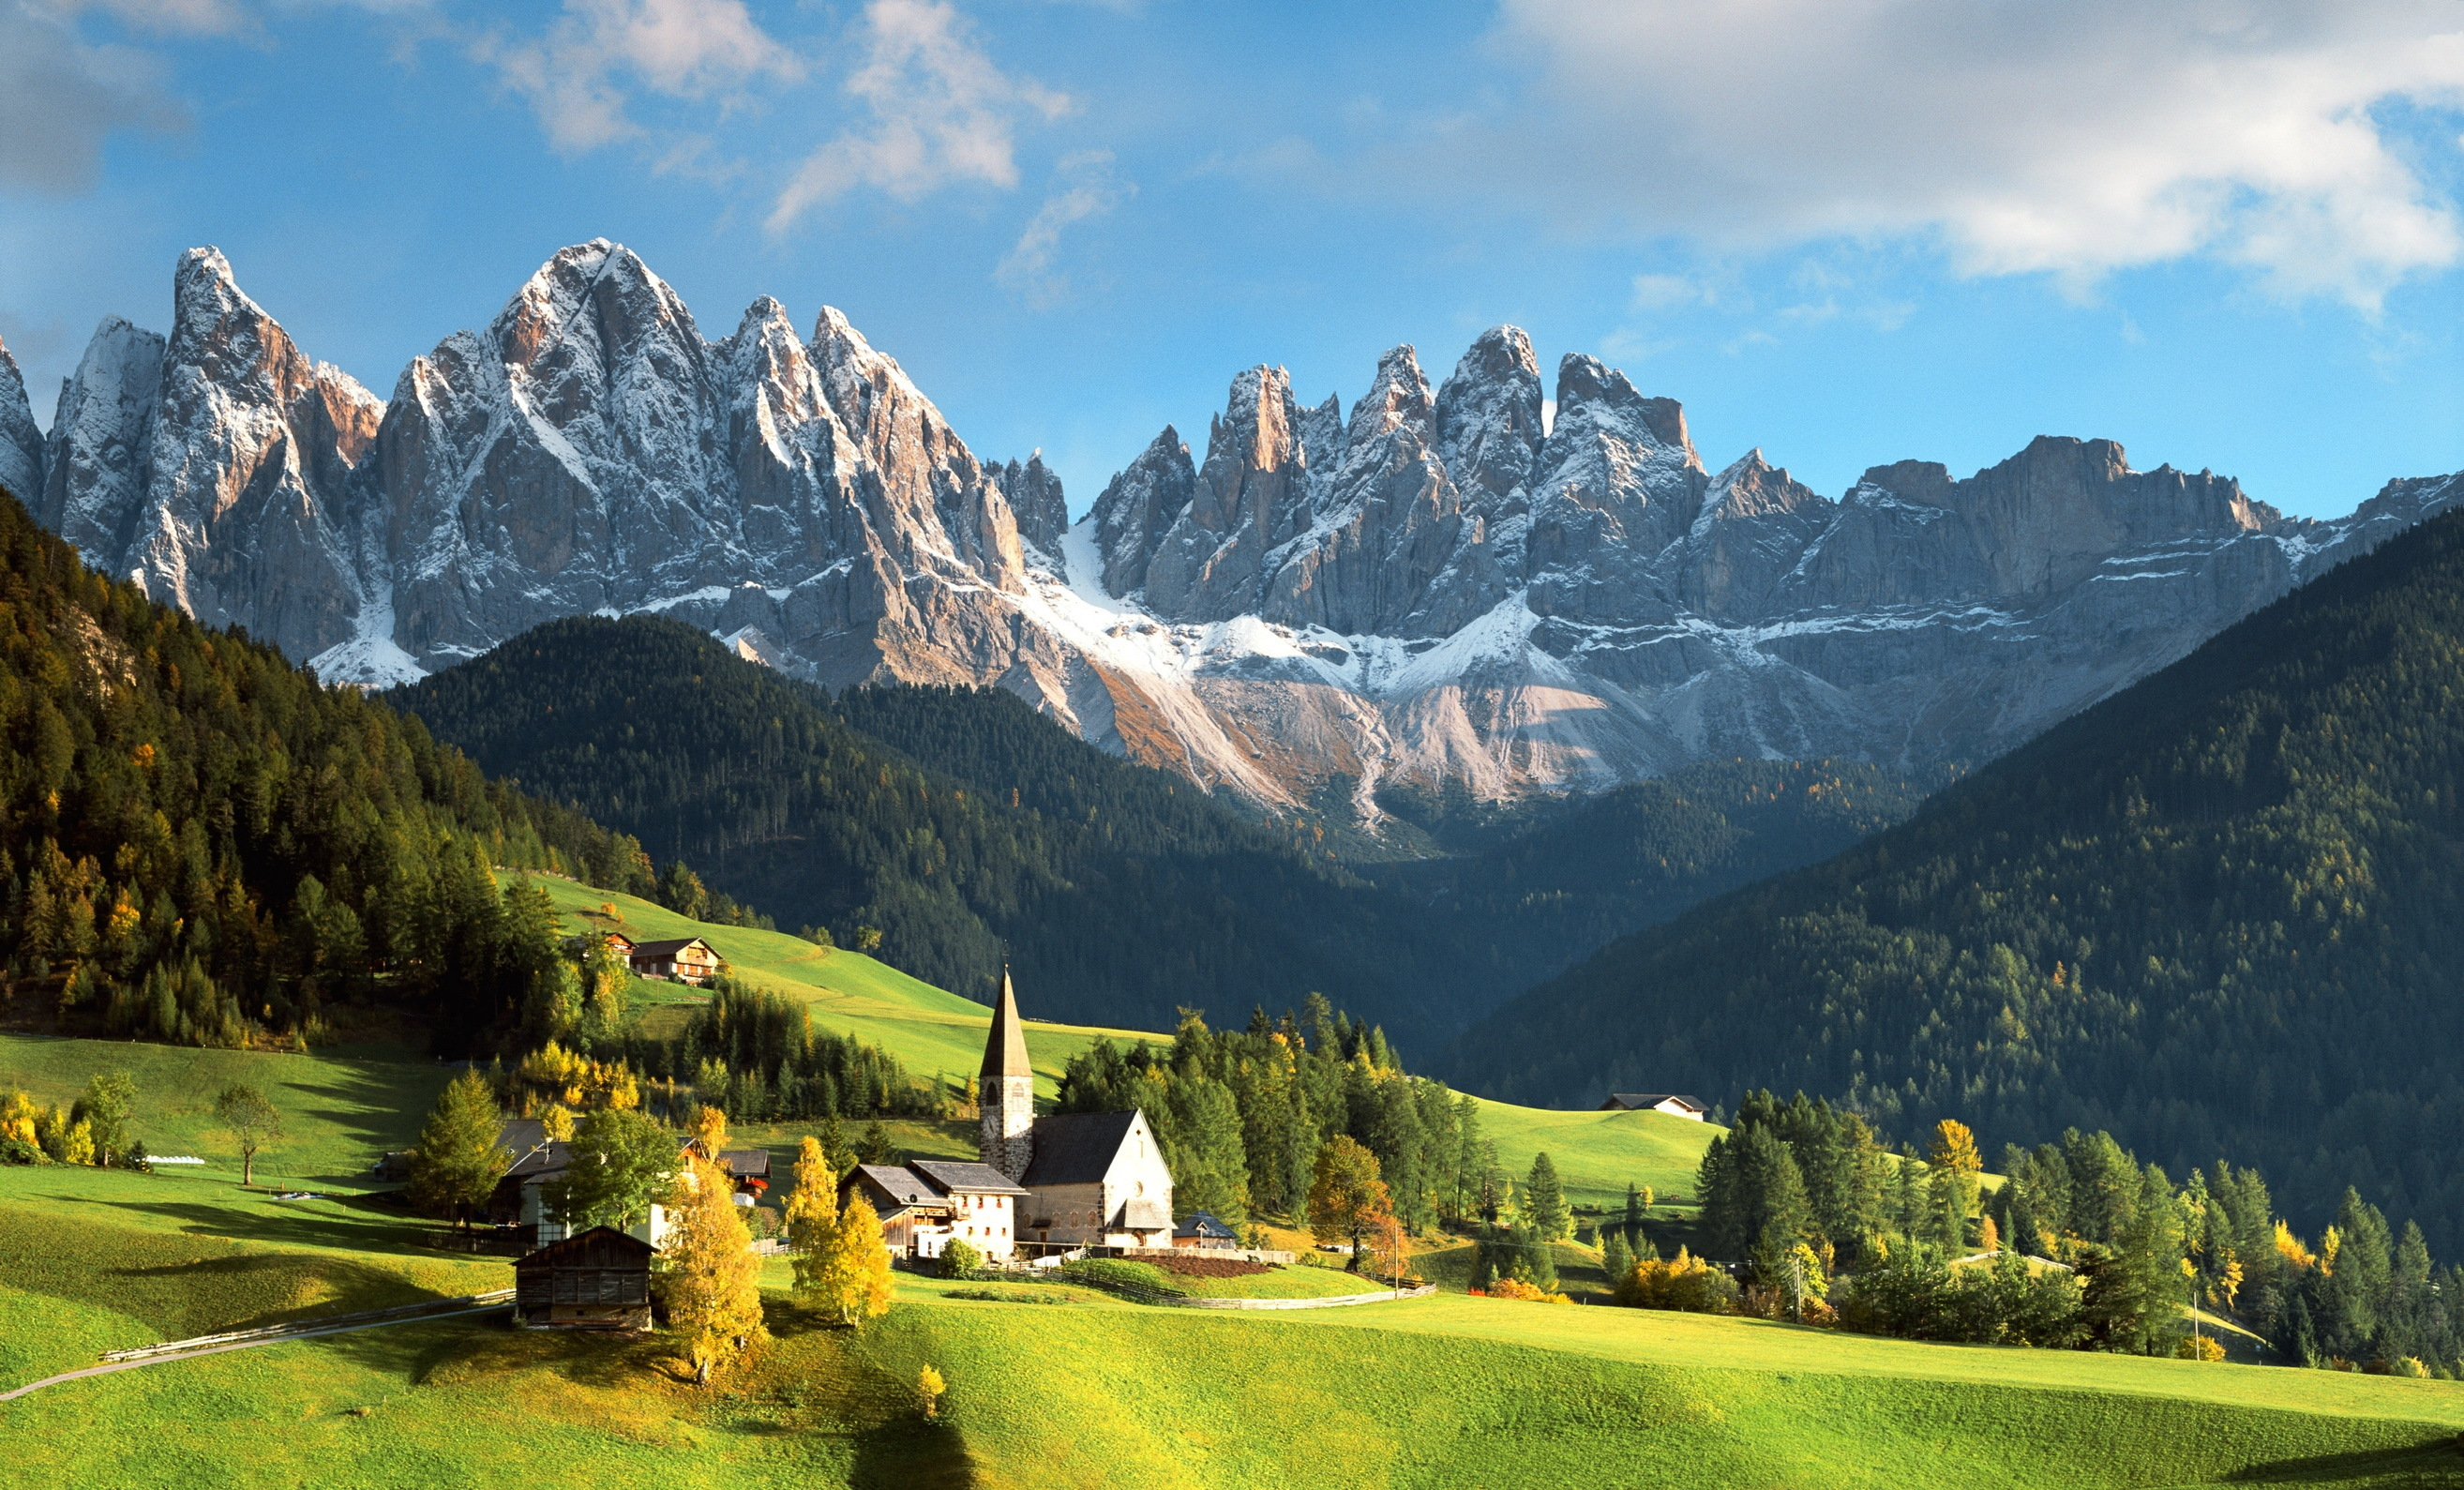 Wallpaper landscape mountains italian alps a town house nature 2628x1589